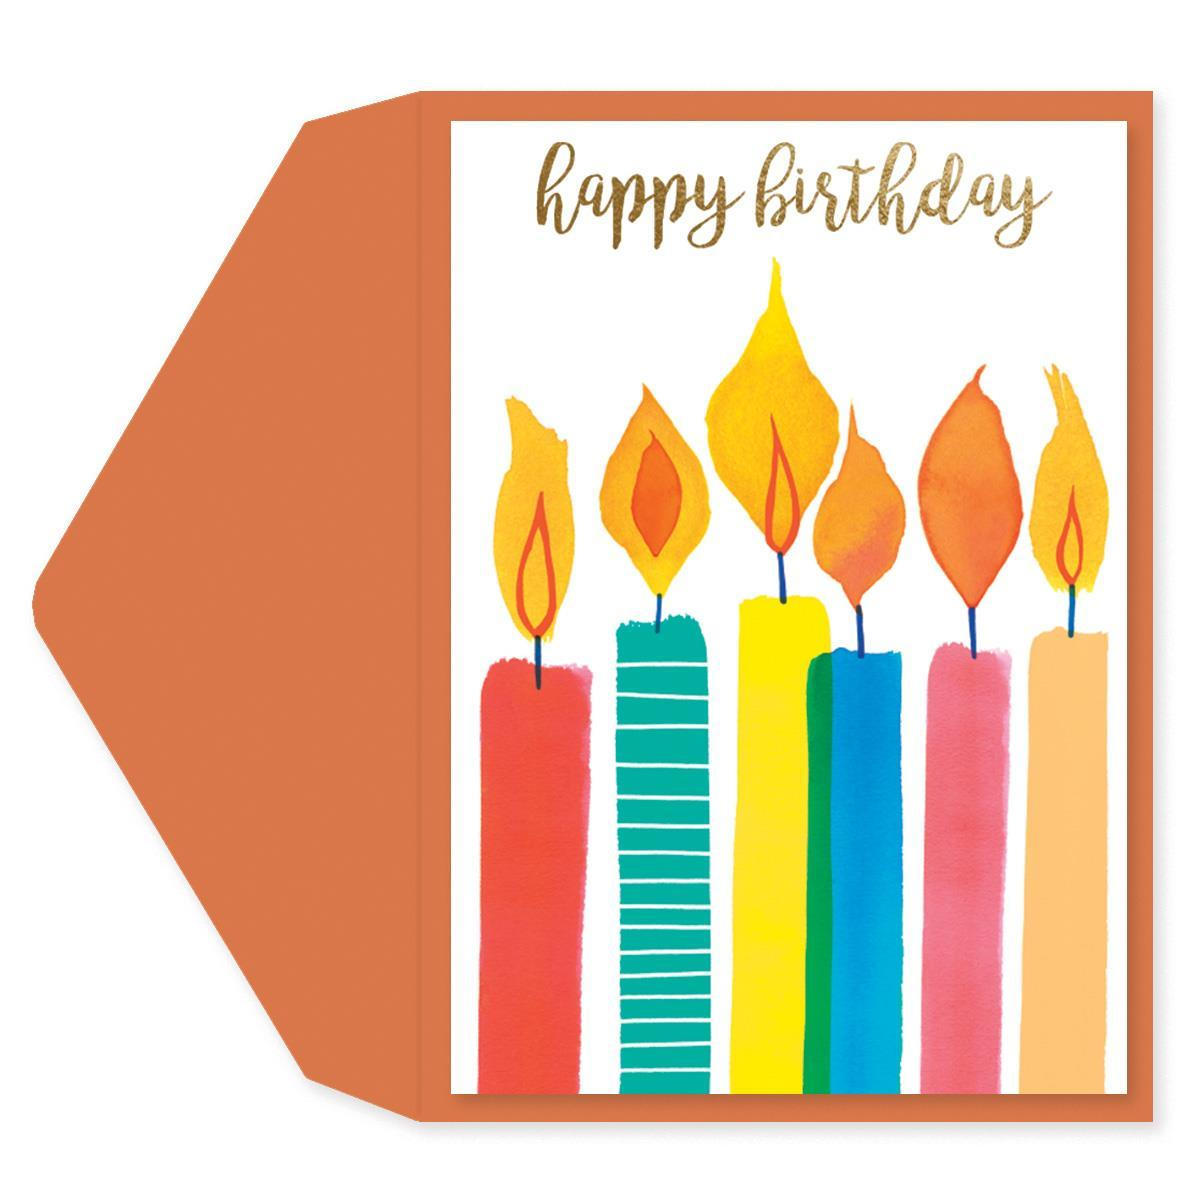 Watercolor Candles Birthday Card